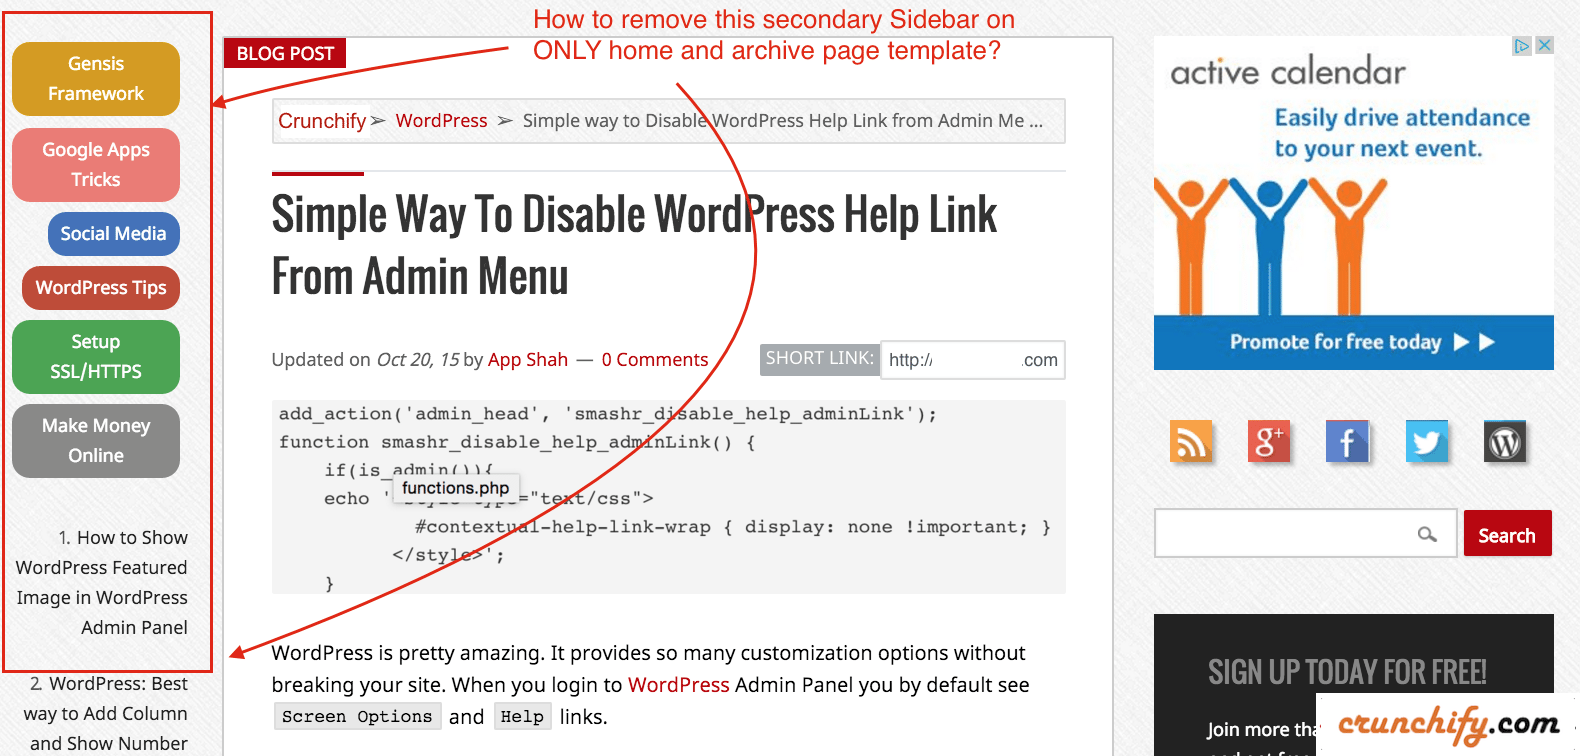 Remove-Secondary-Sidebar-on-Home-and-Archive-Page-Crunchify